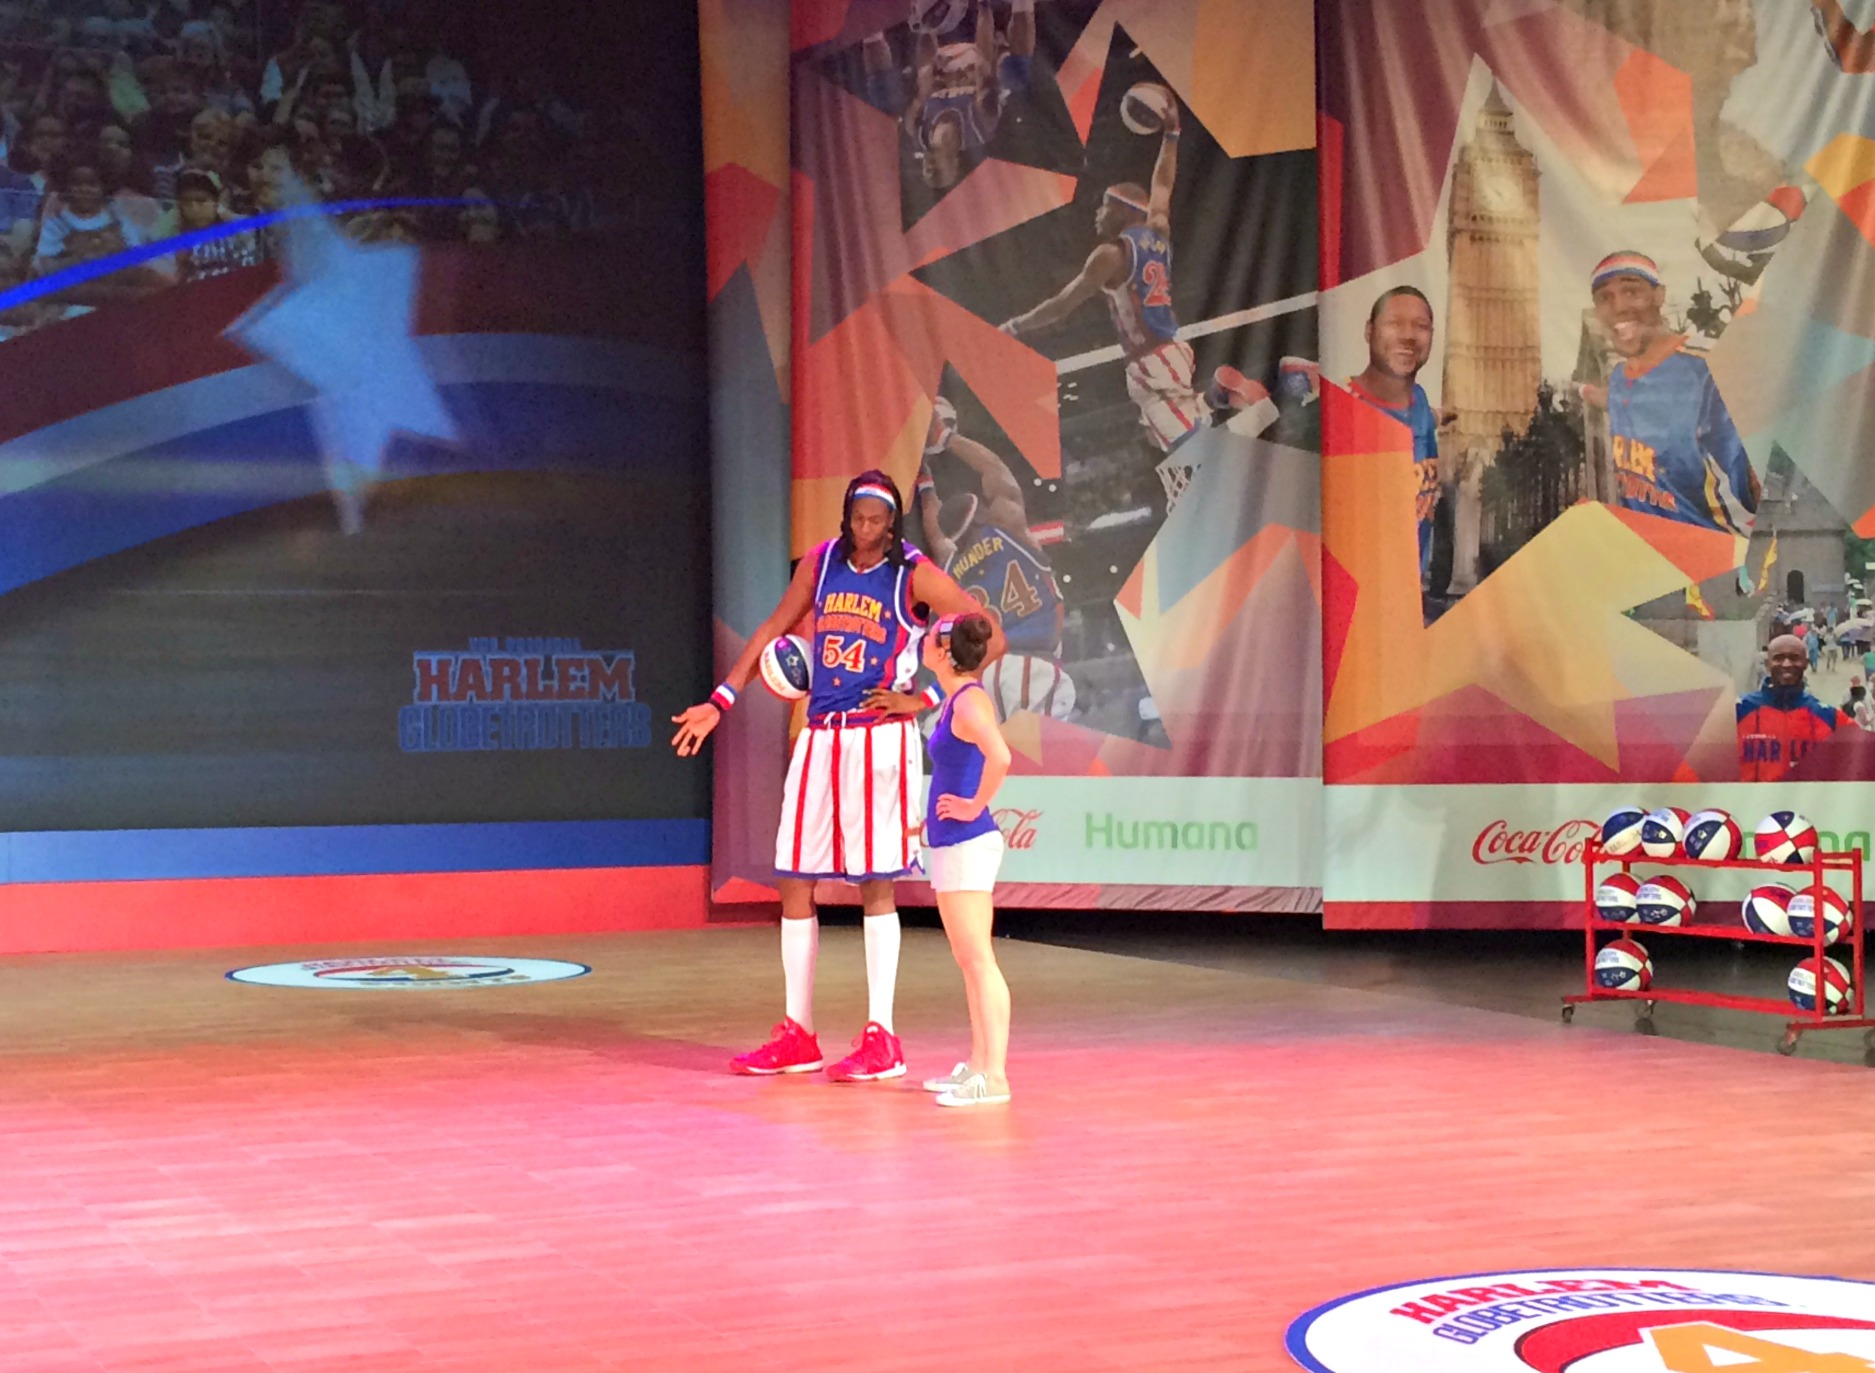 heather pulled on stage at harlem globetrotters